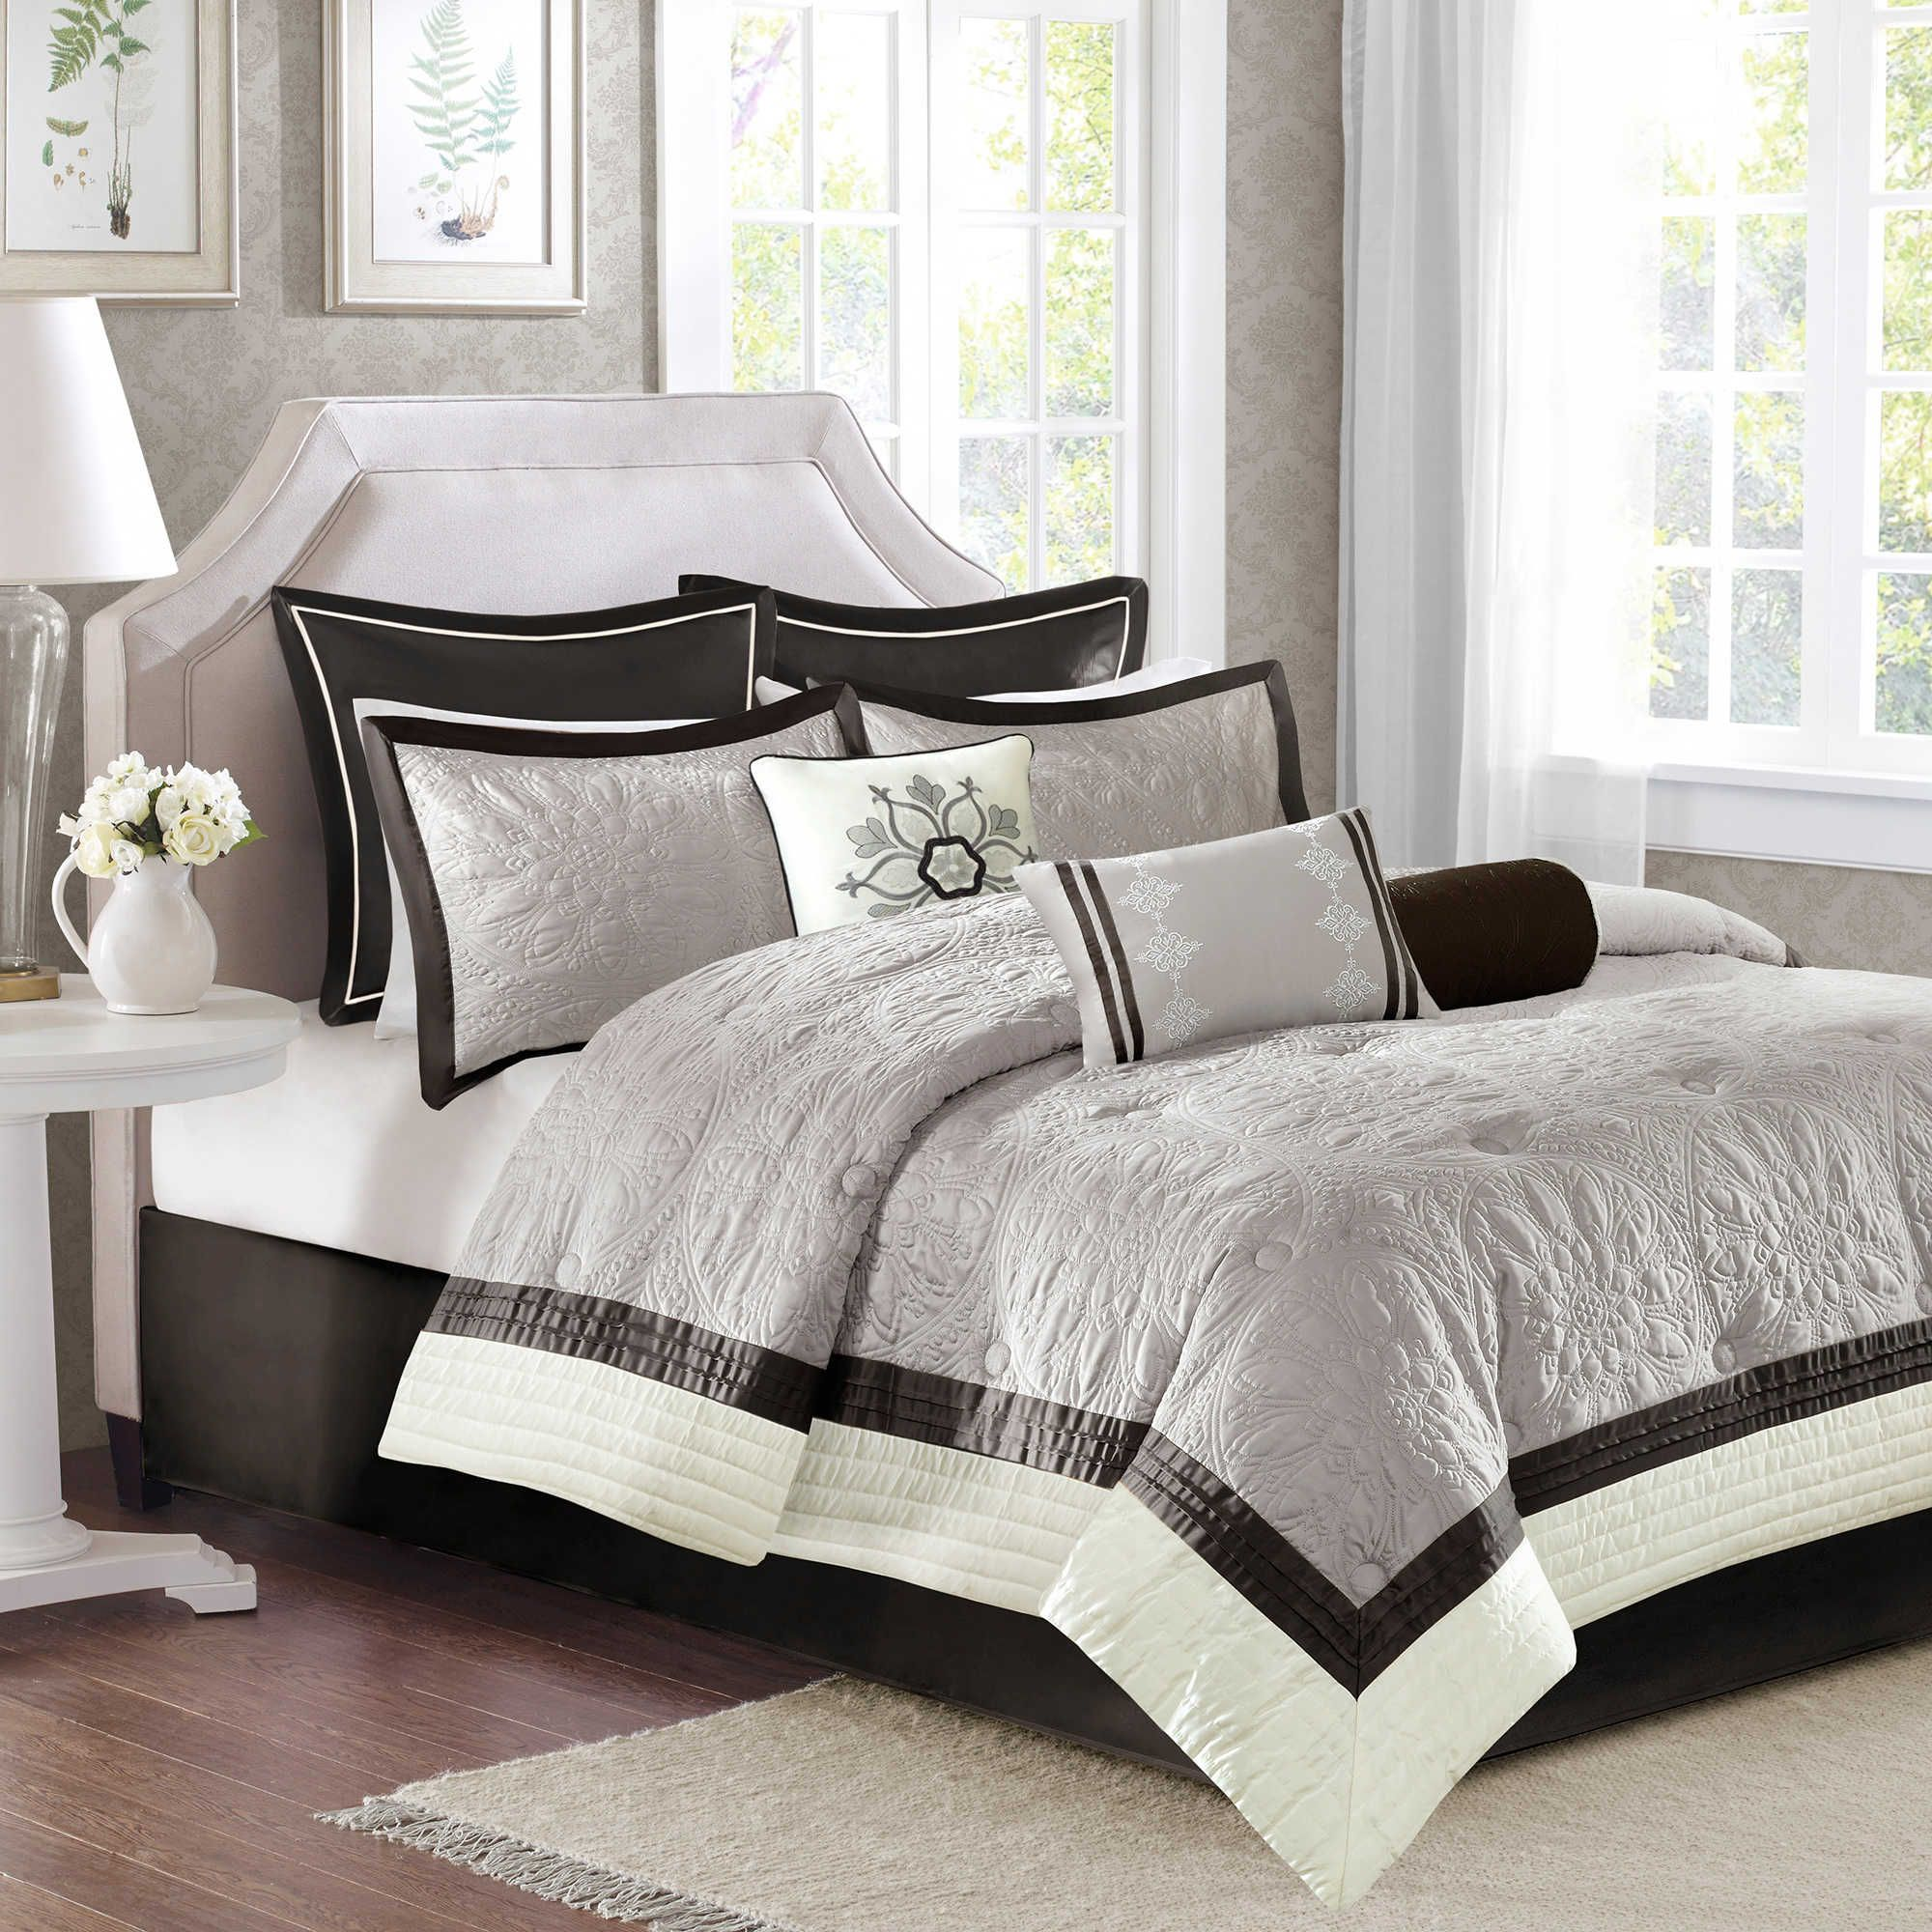 comforter home piece bed florentina bath pdx set chic reviews wayfair